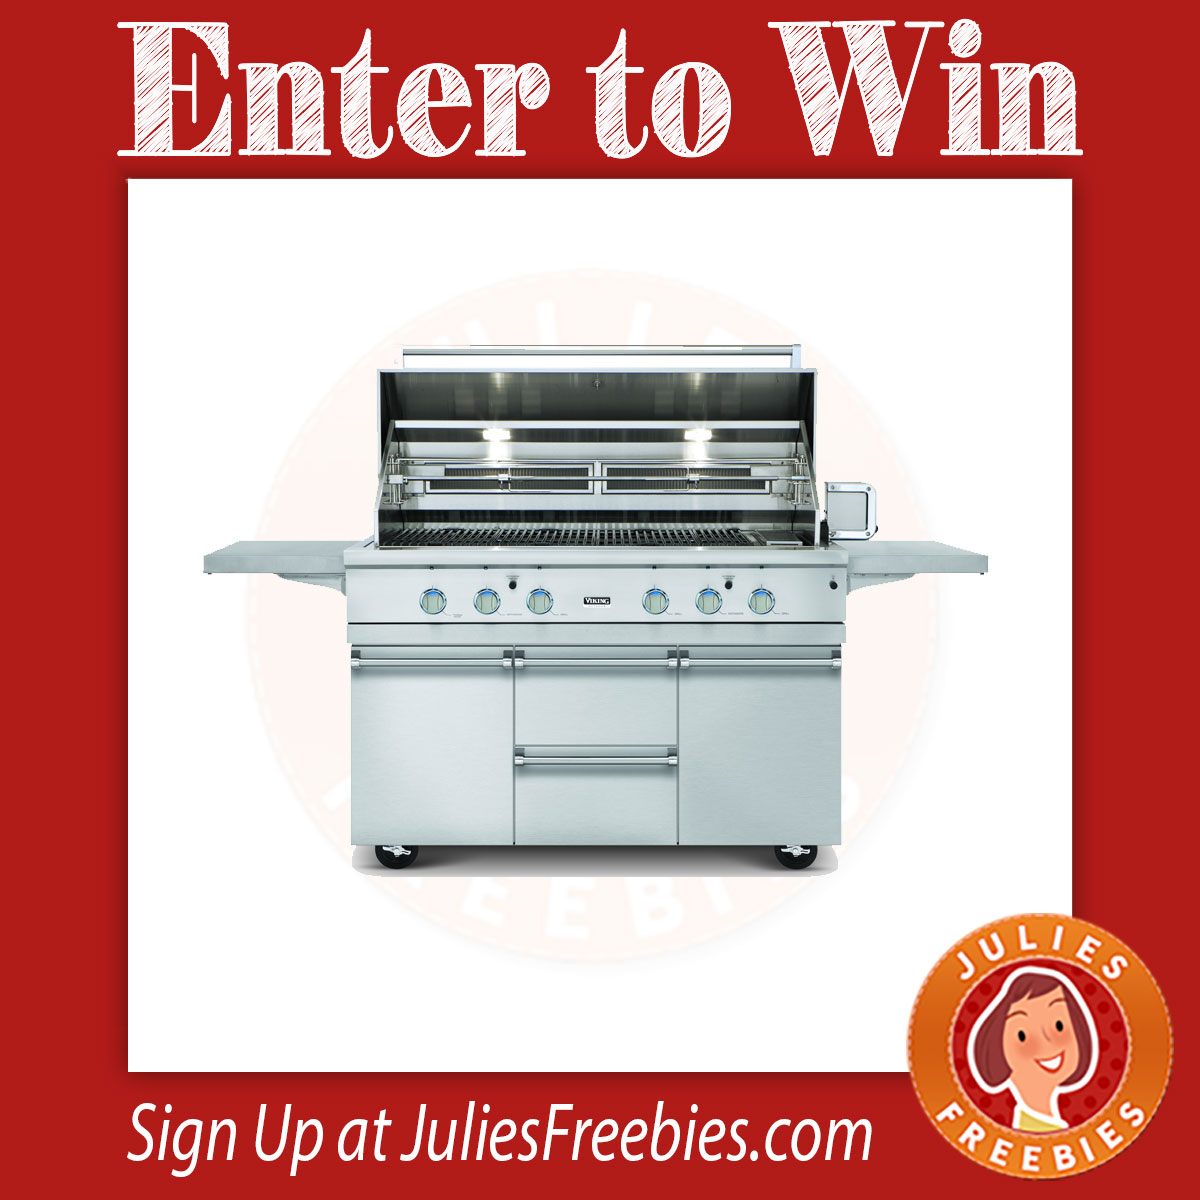 Uncategorized Kitchen Appliance Sweepstakes beringer founders estate great steak challenge sweepstakes here is an offer where you can enter to win the sweepstakes